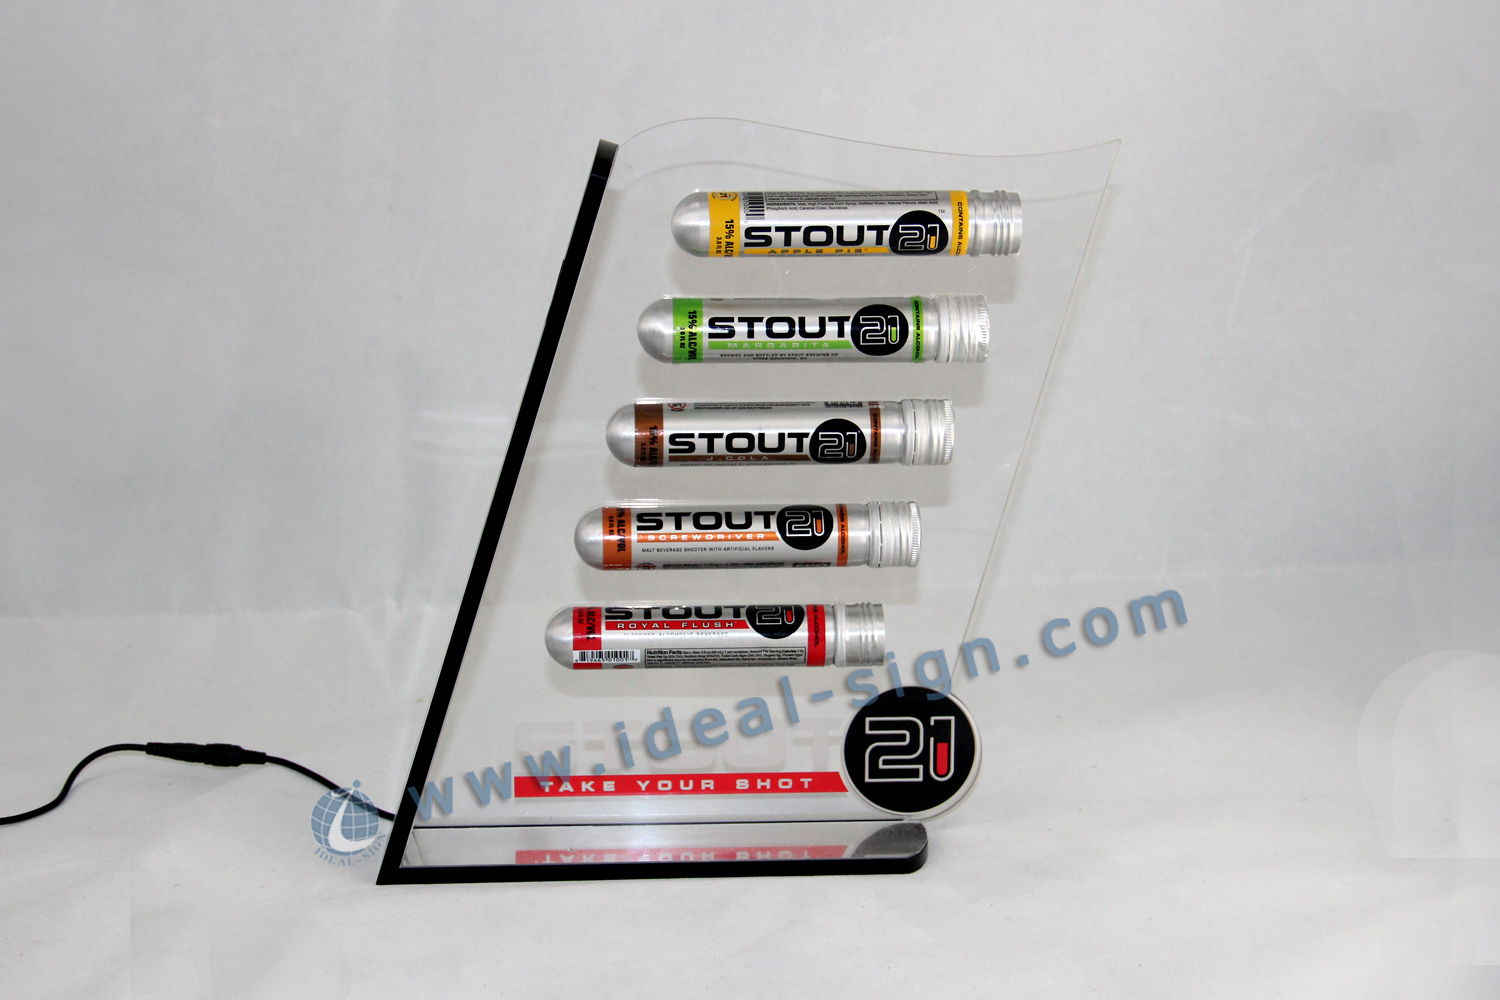 Acrylic LED Lighted Liquor shelf for displaying